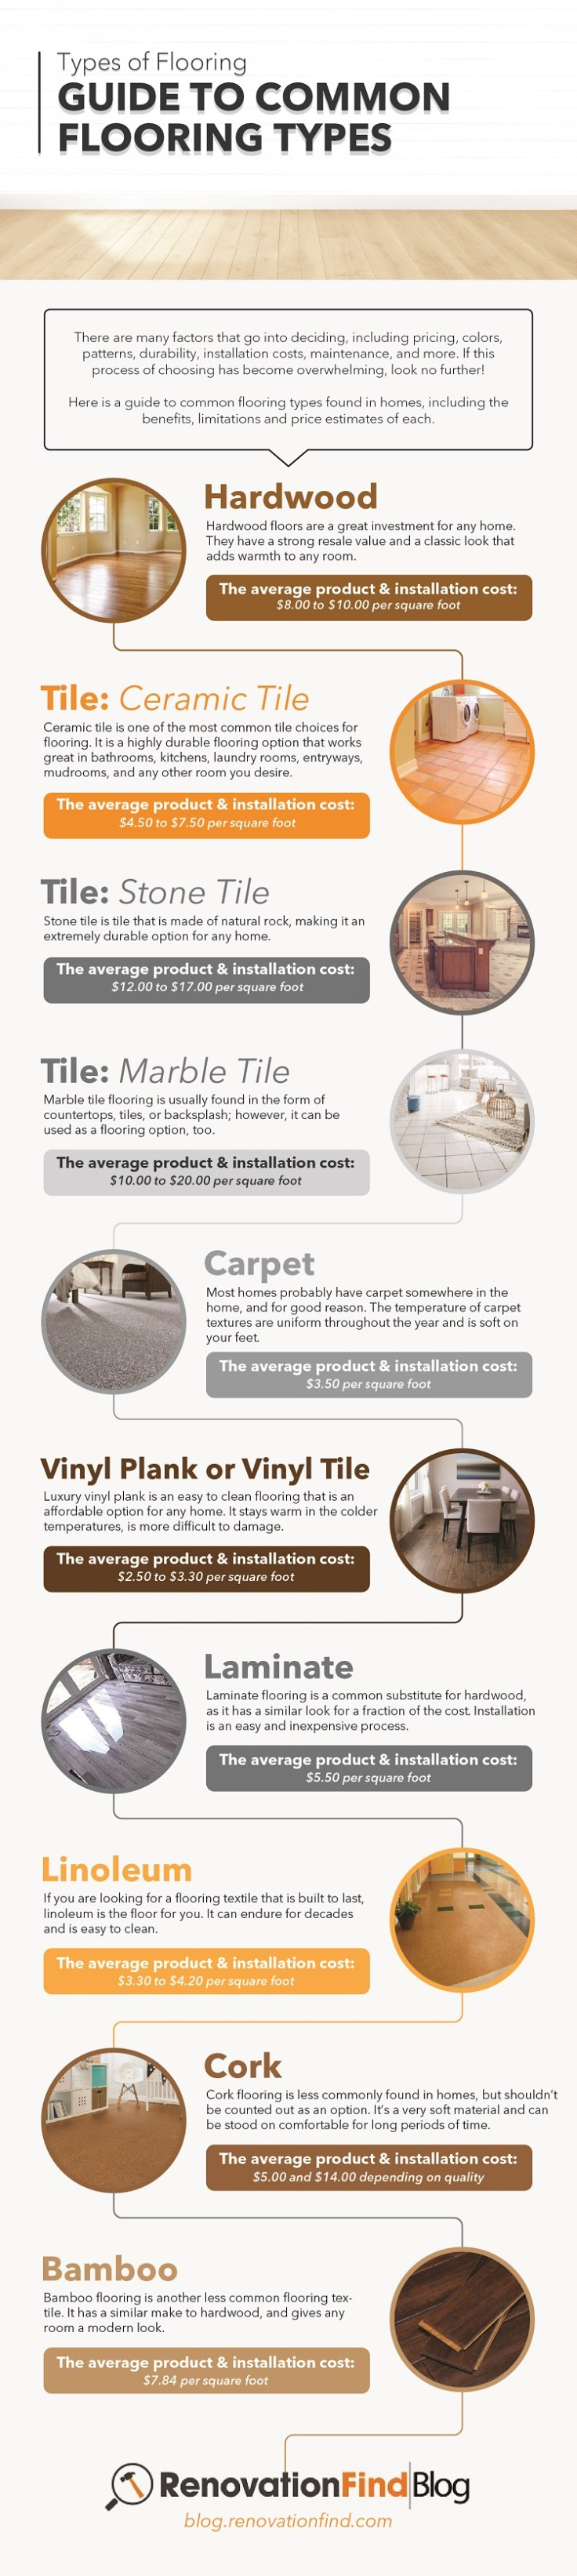 Infographic - TYPES OF FLOORING